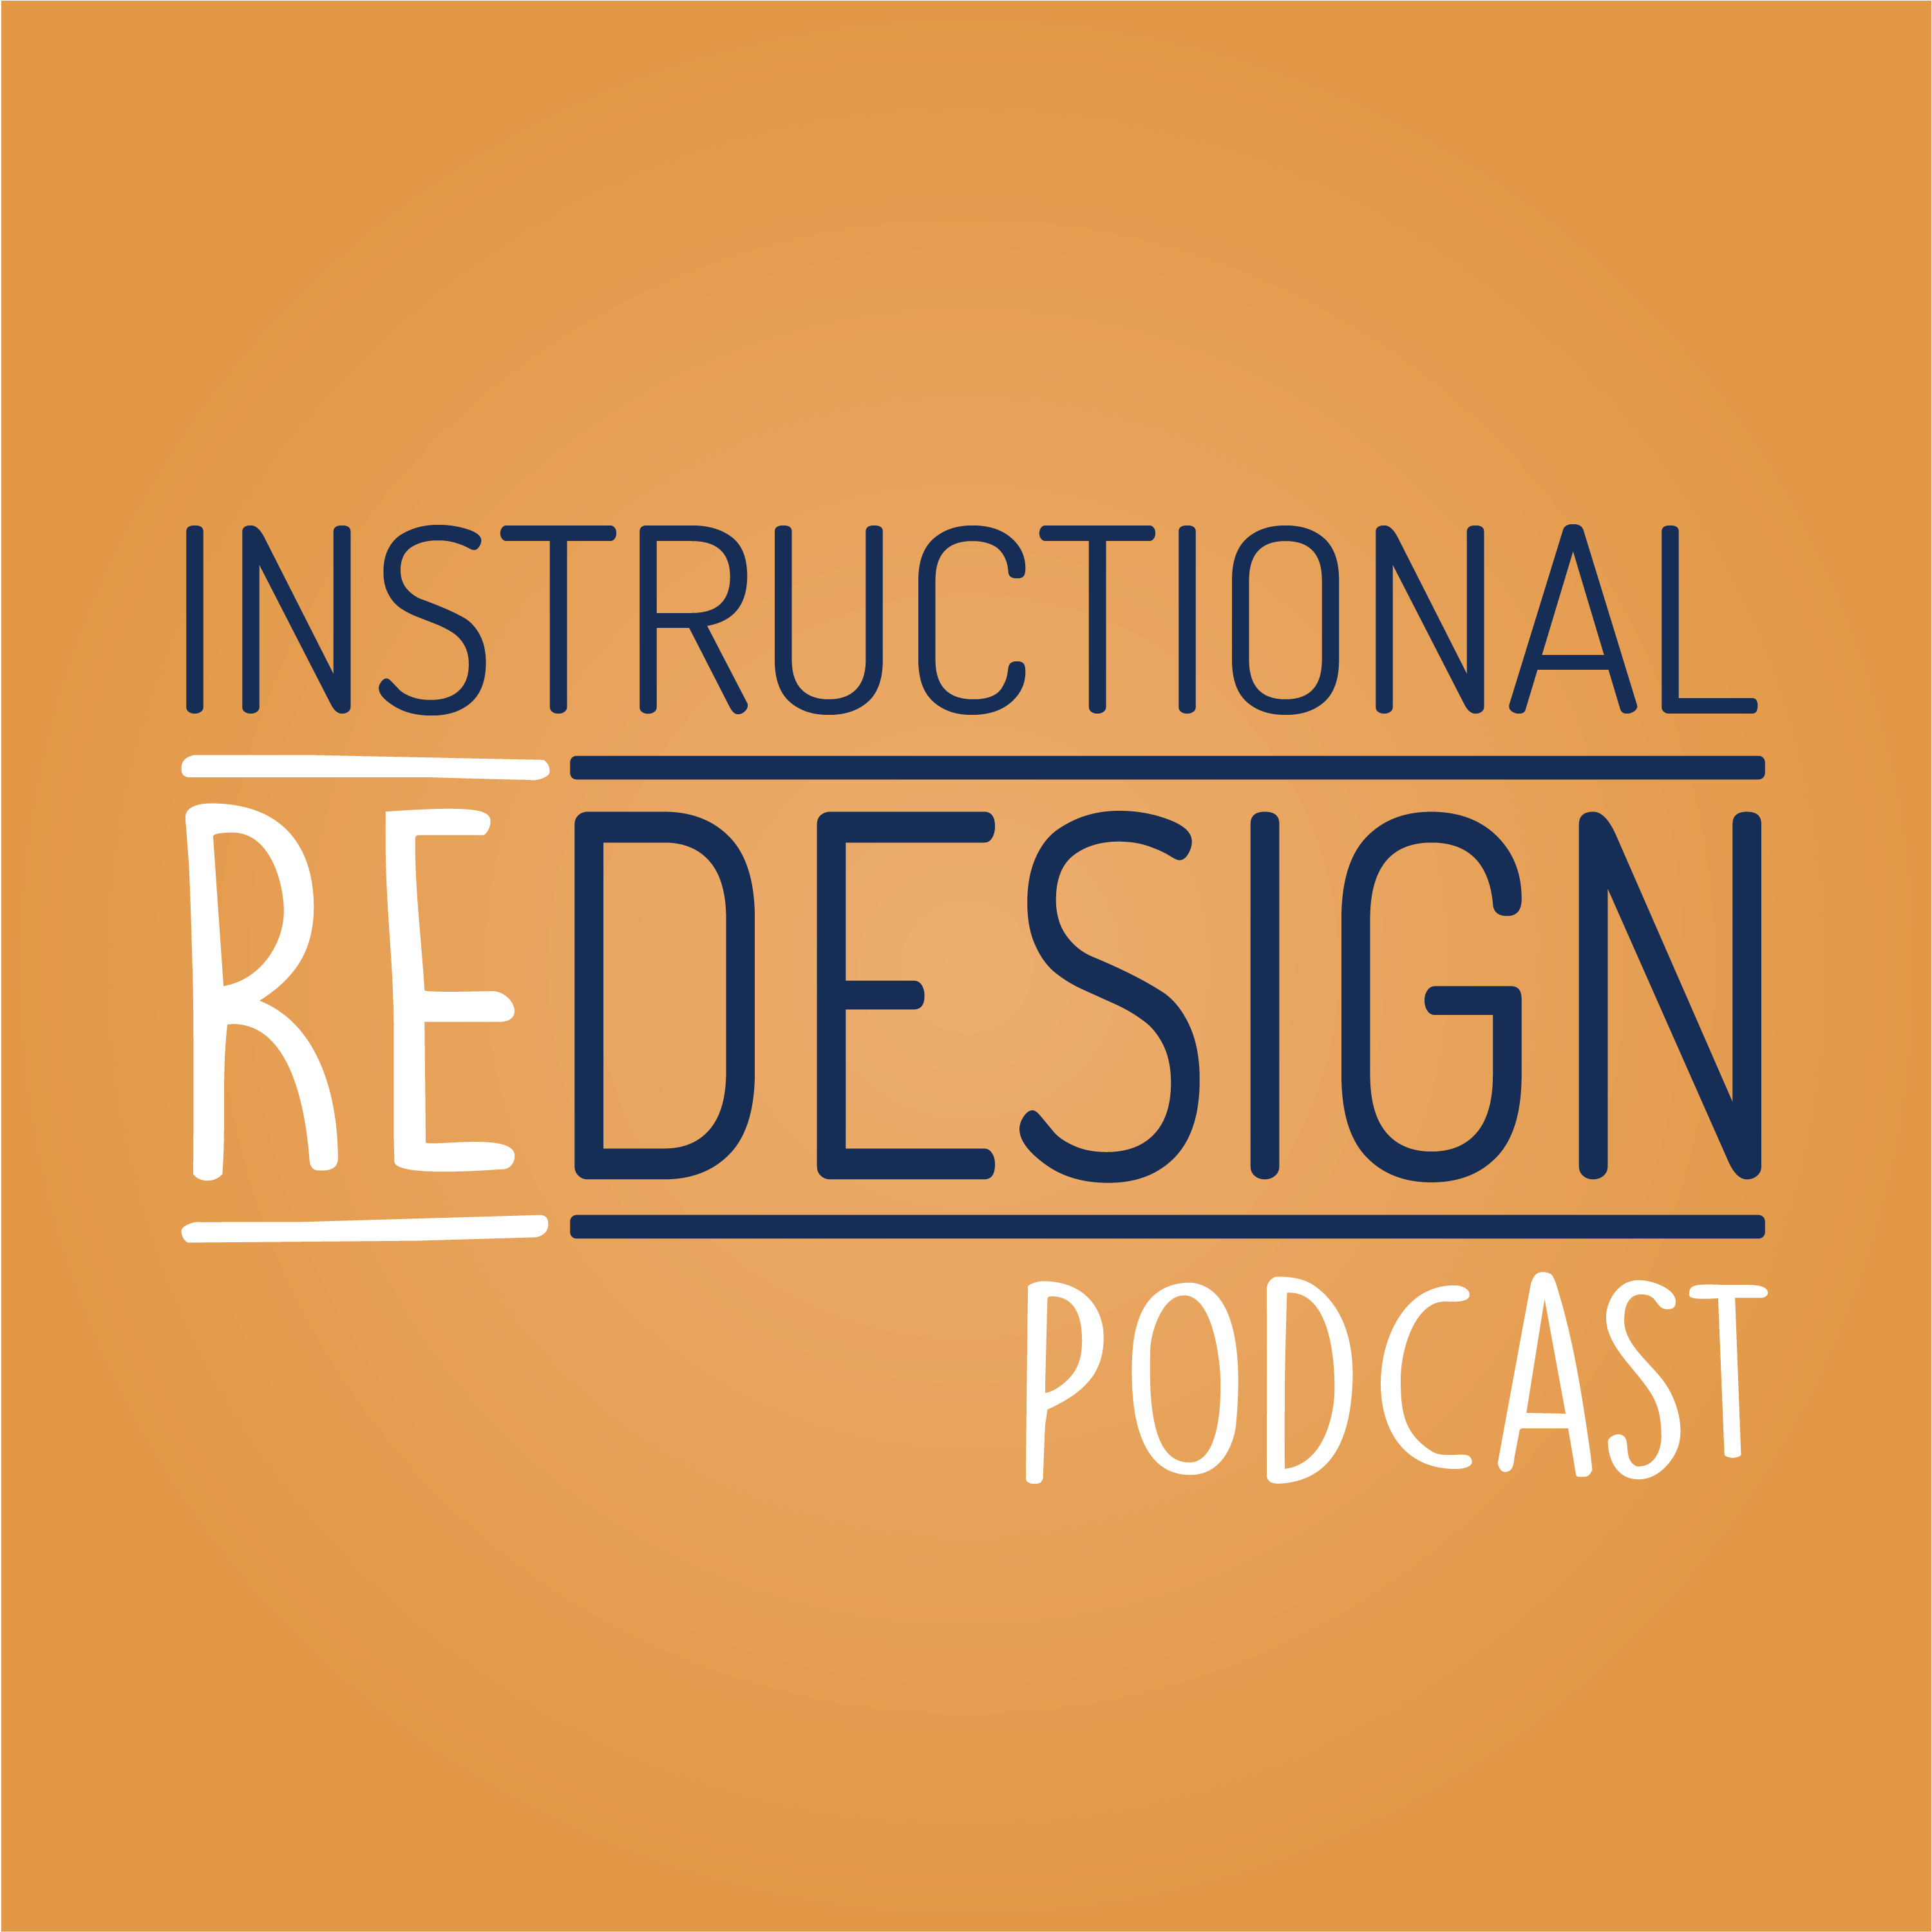 Instructional Redesign Podcast